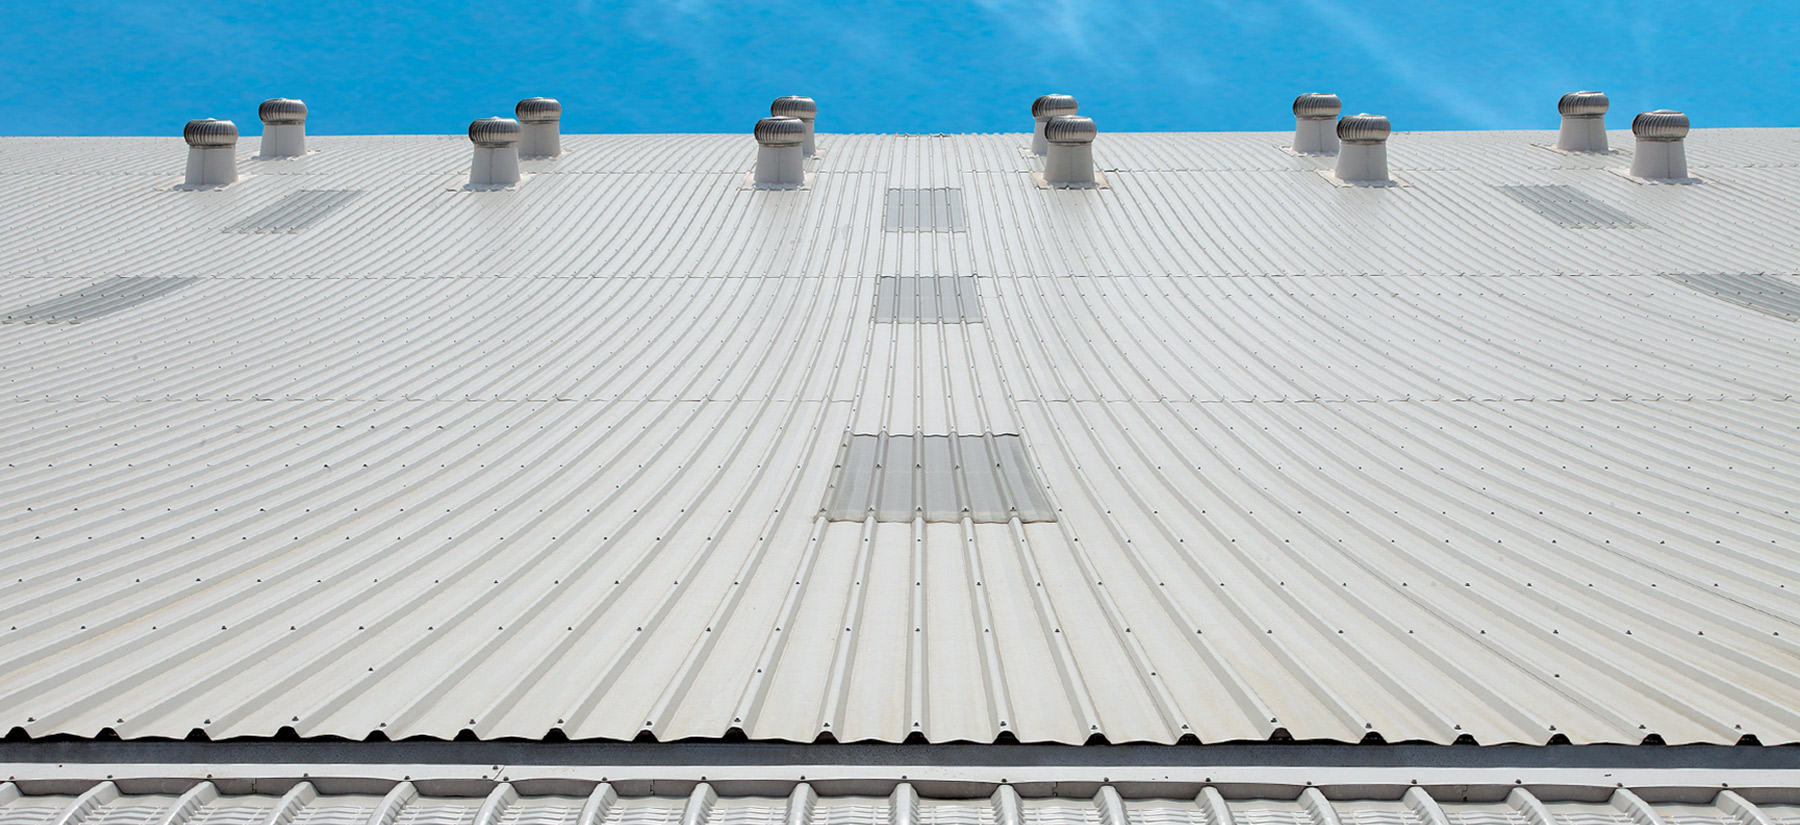 Concealed Fixed Roof Systems